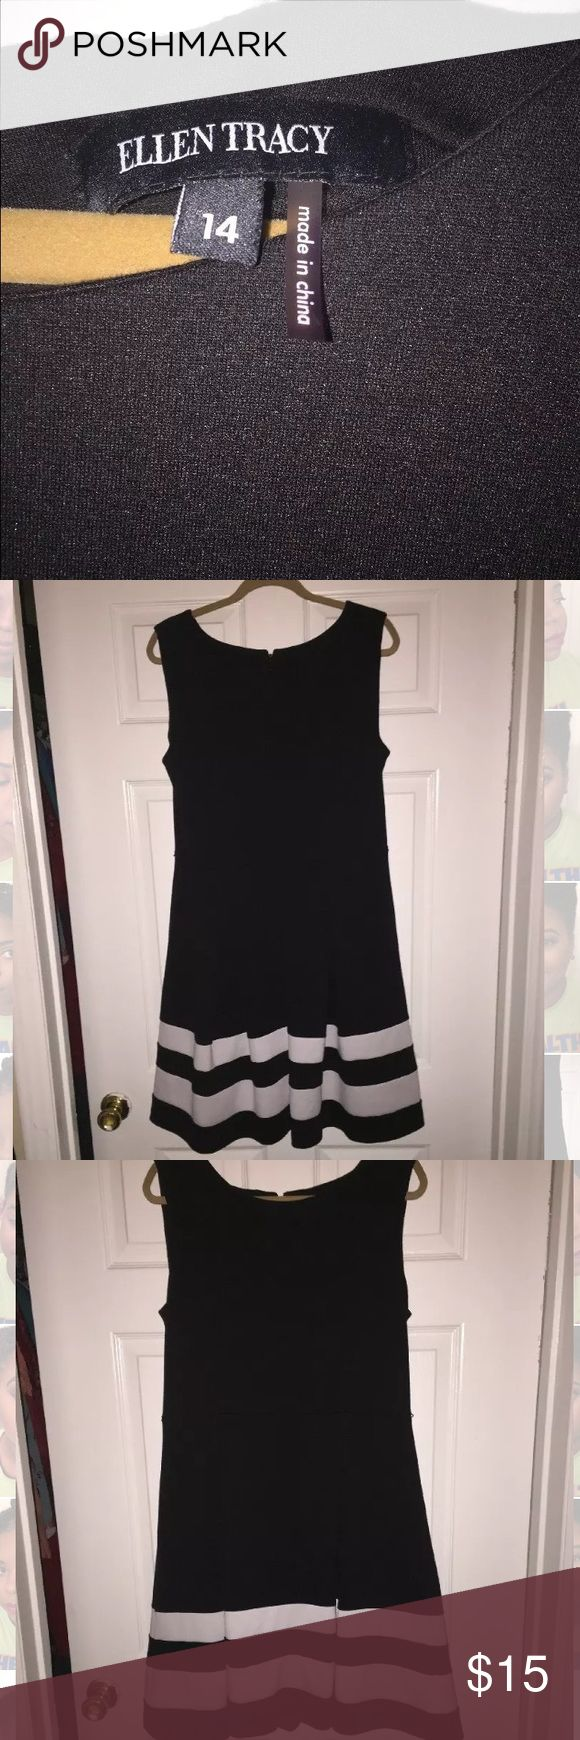 Ellen Tracy Black and White Tea Dress Size 14 Channel your inner Audrey Hepburn with this Ellen Tracy Tea Dress. Dress it up with heels or down with sandals. Ellen Tracy Dresses